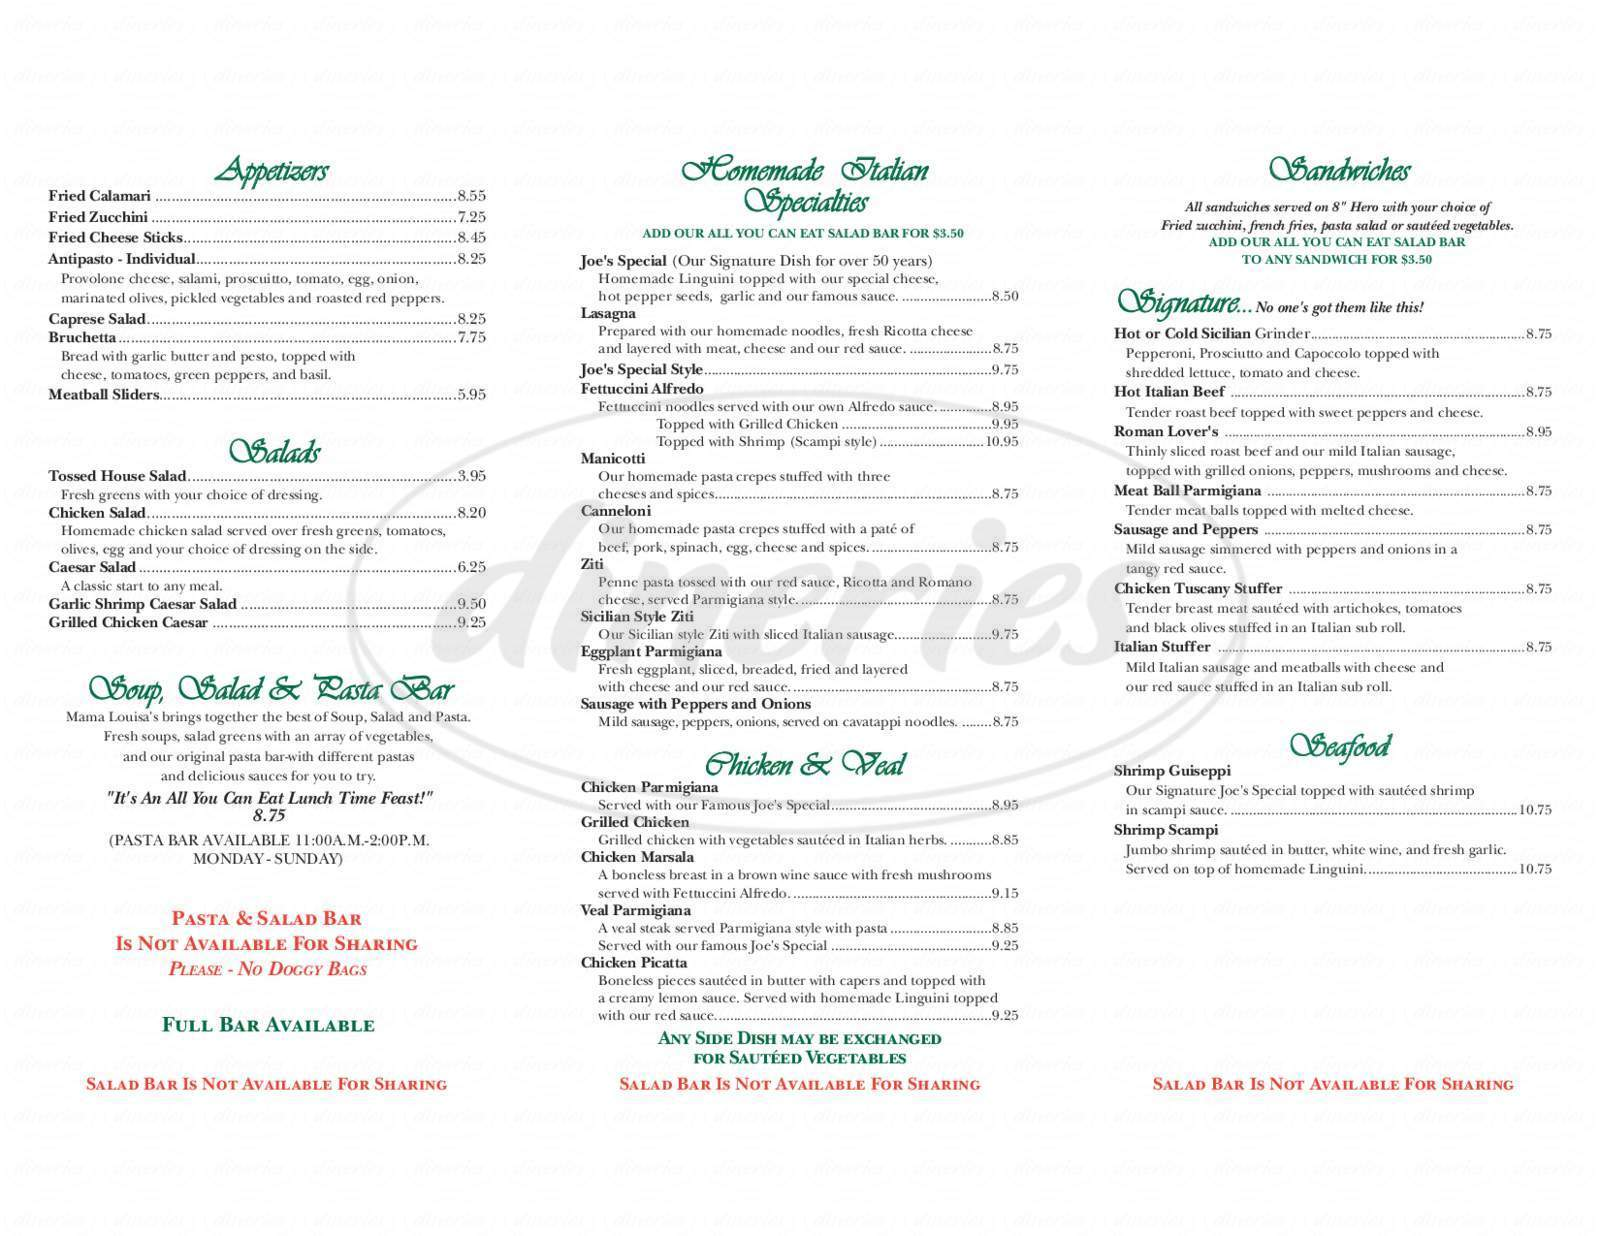 menu for Mama Louisa's Italian Restaurant